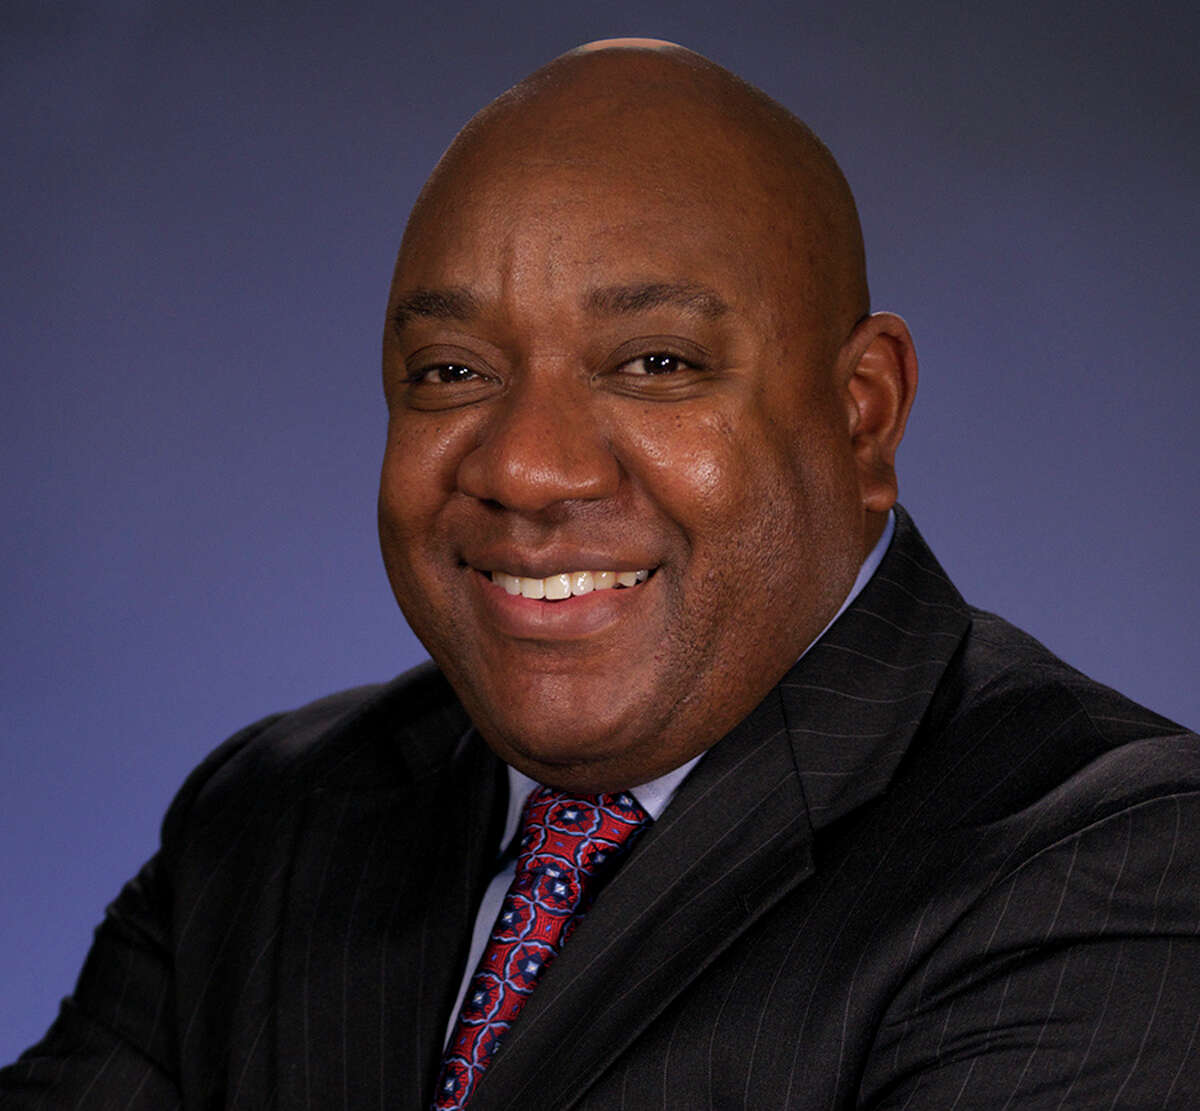 Isaac Johnson has joined TDECU as vice president, chief risk officer and general counsel.